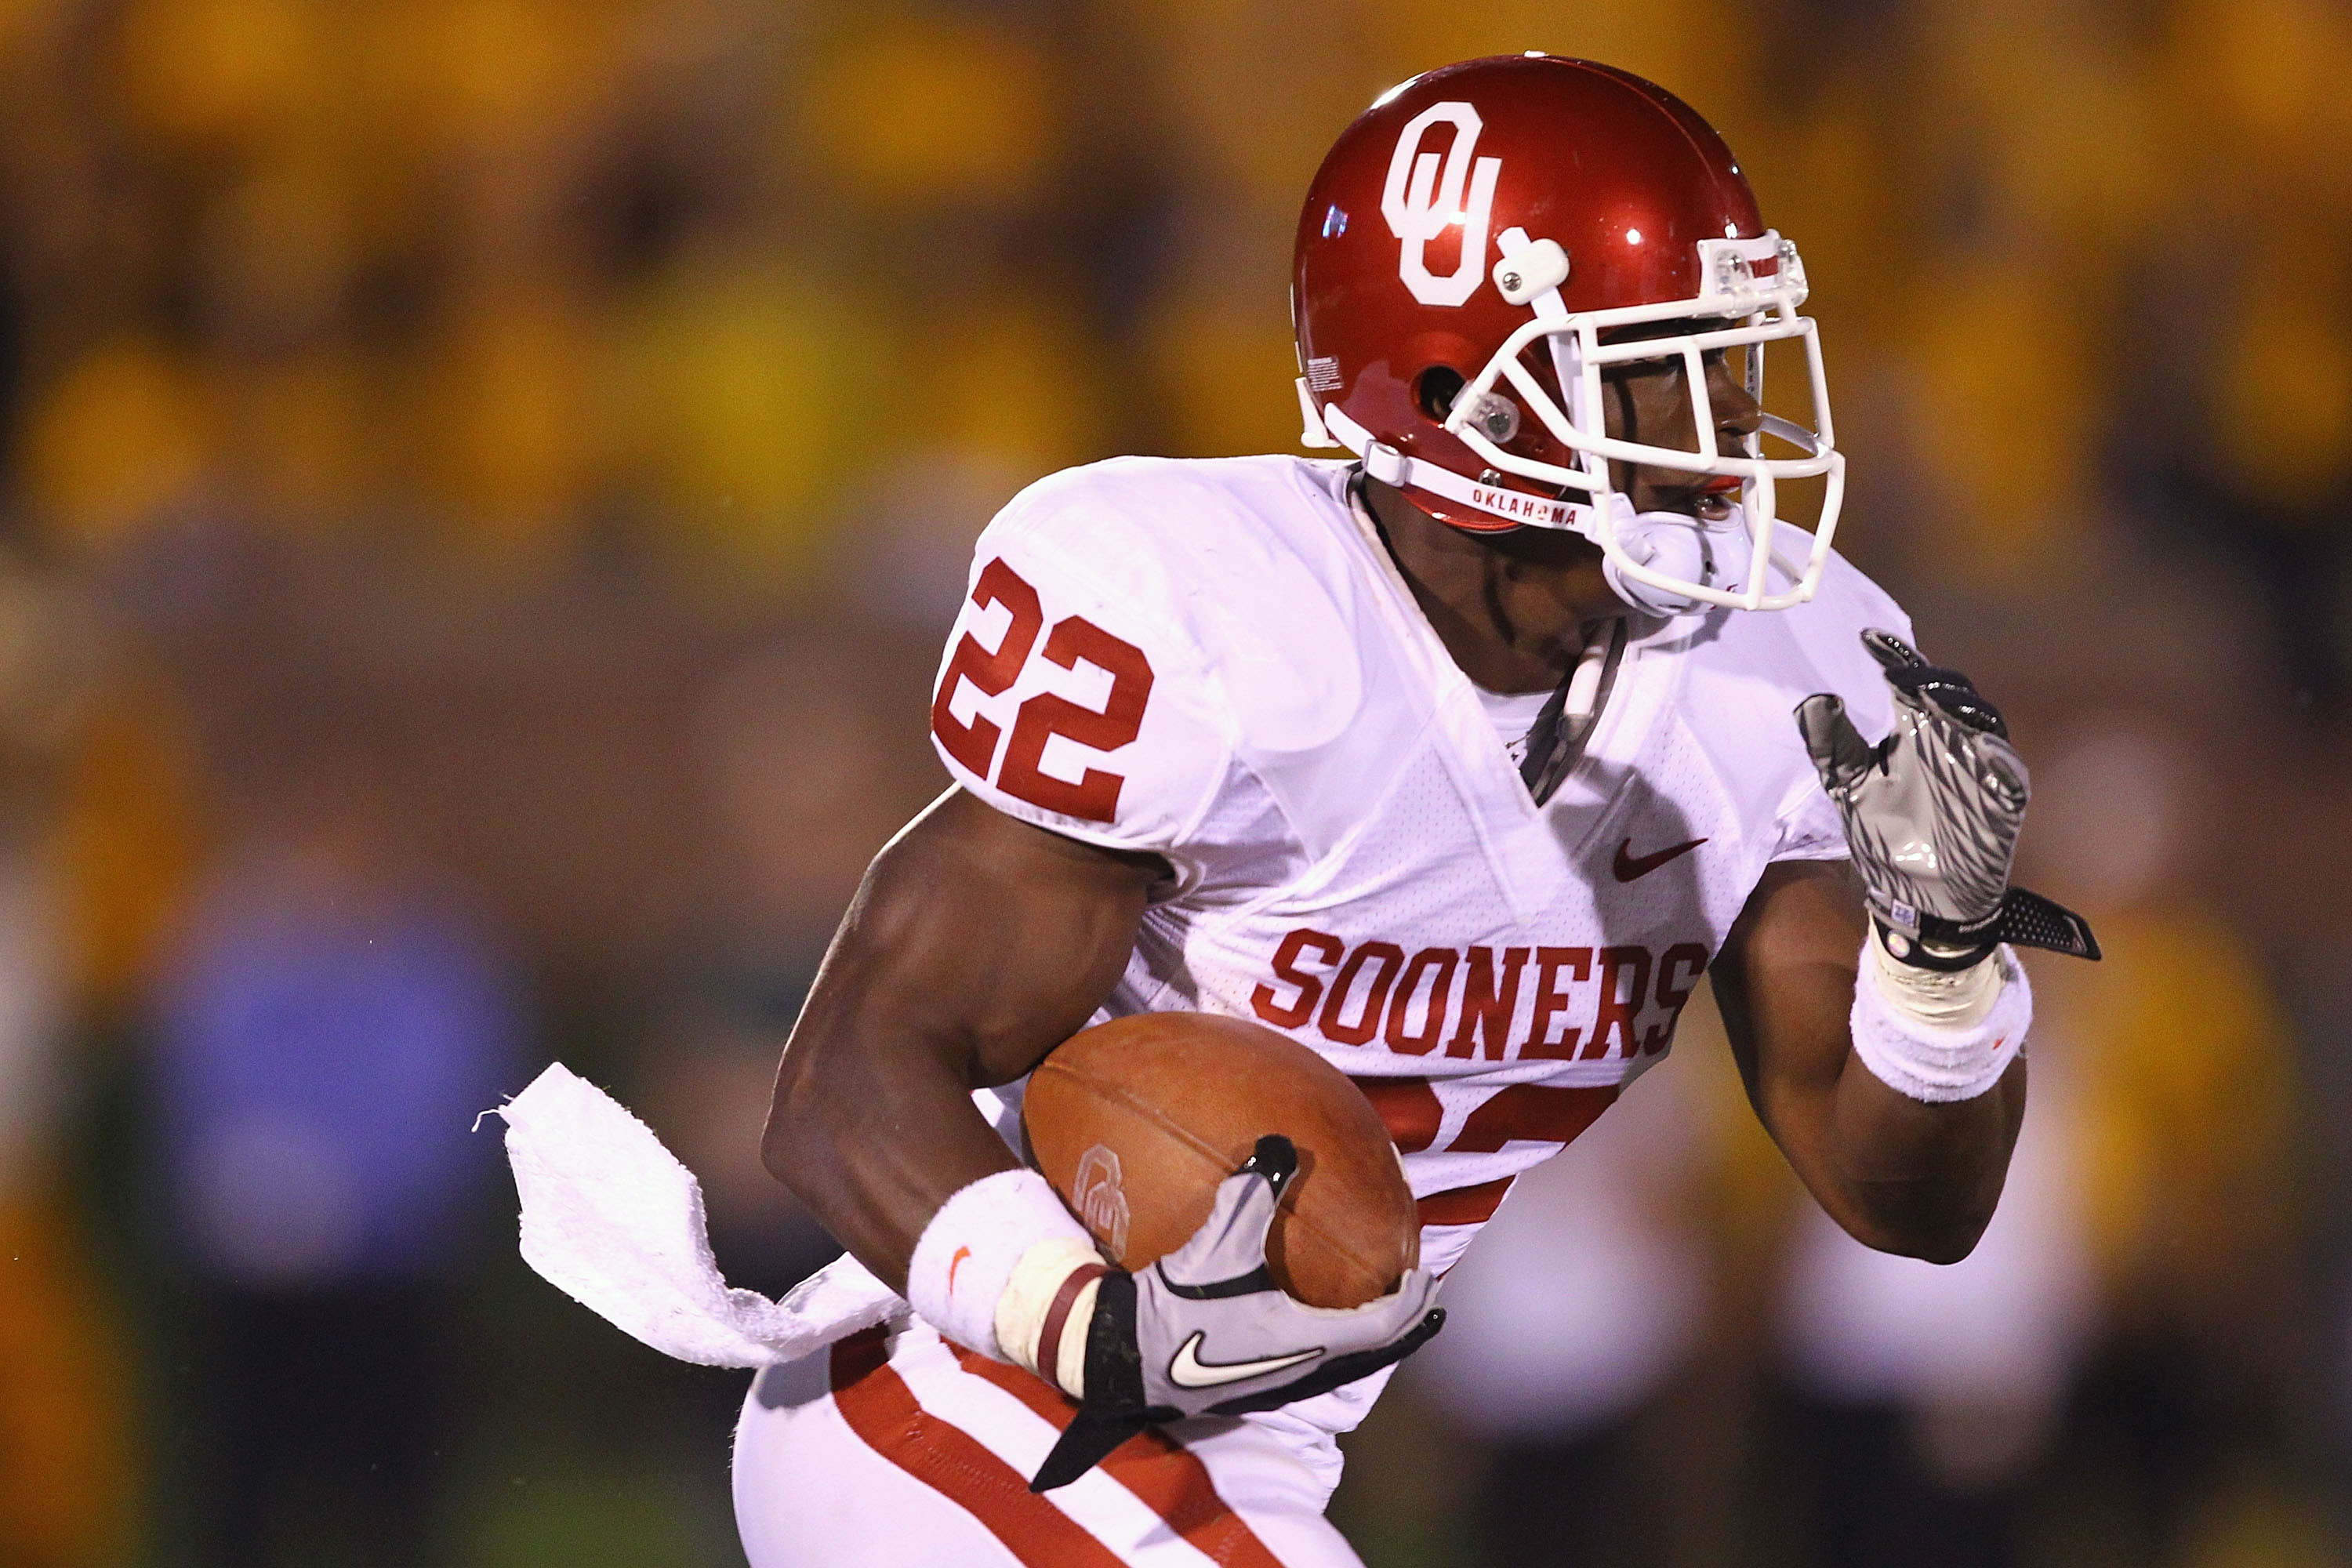 COLUMBIA, MISSOURI - OCTOBER 23: Roy Finch #22 of the Oklahoma Sooners rushes against the Missouri Tigers at Faurot Field/Memorial Stadium on October 23, 2010 in Columbia, Missouri.  (Photo by Dilip Vishwanat/Getty Images)